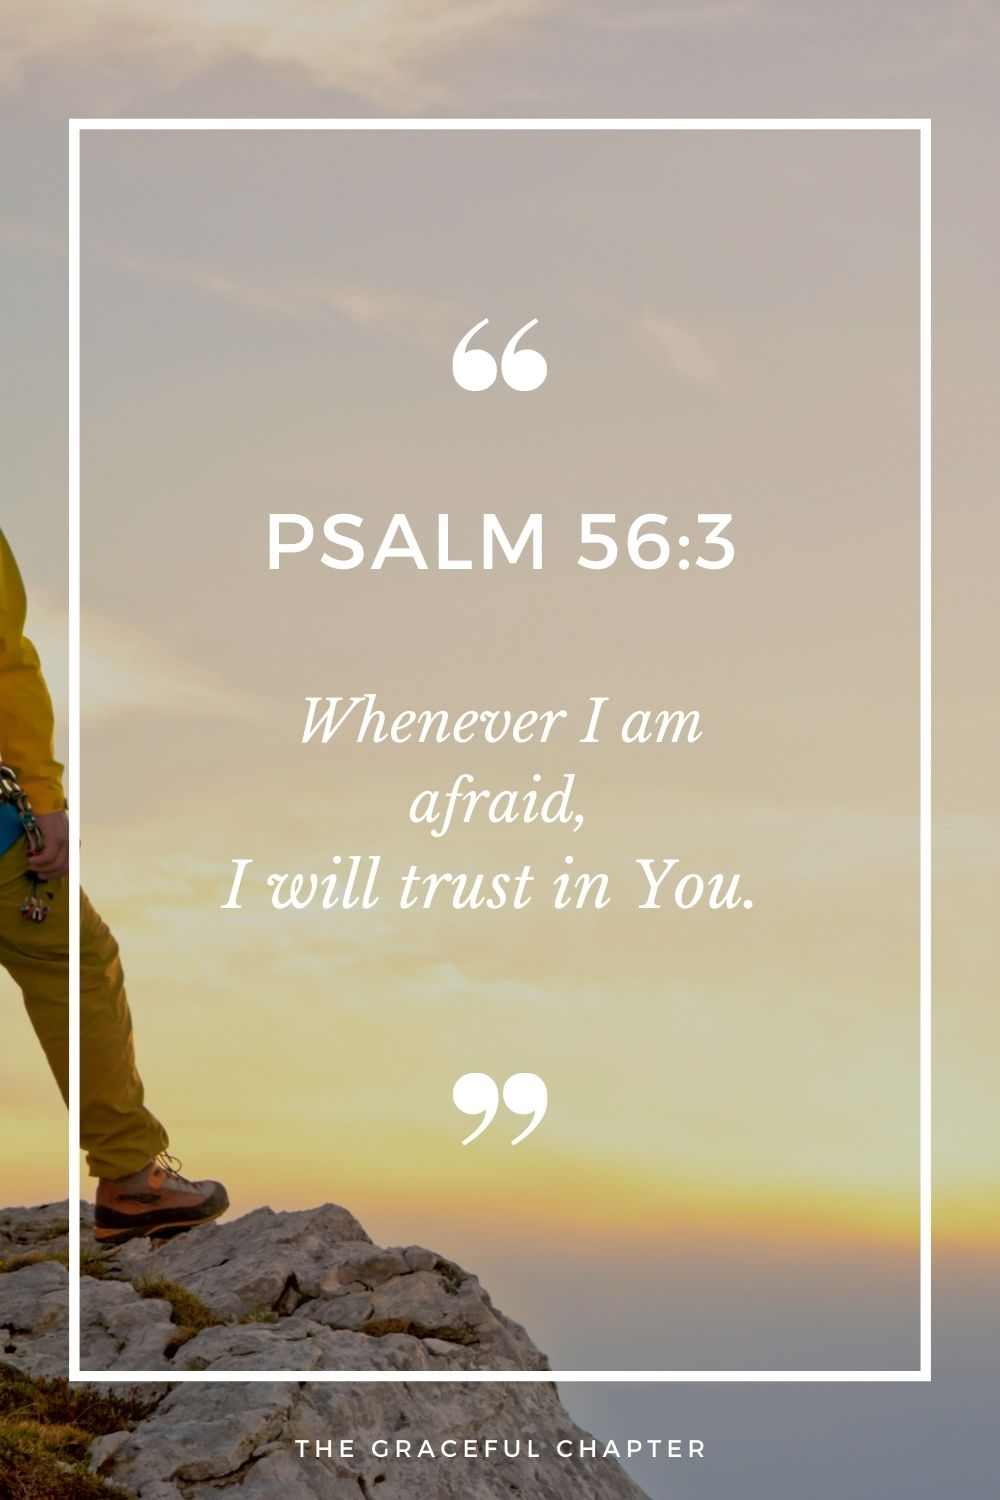 Whenever I am afraid, I will trust in You.  Psalm 56:3